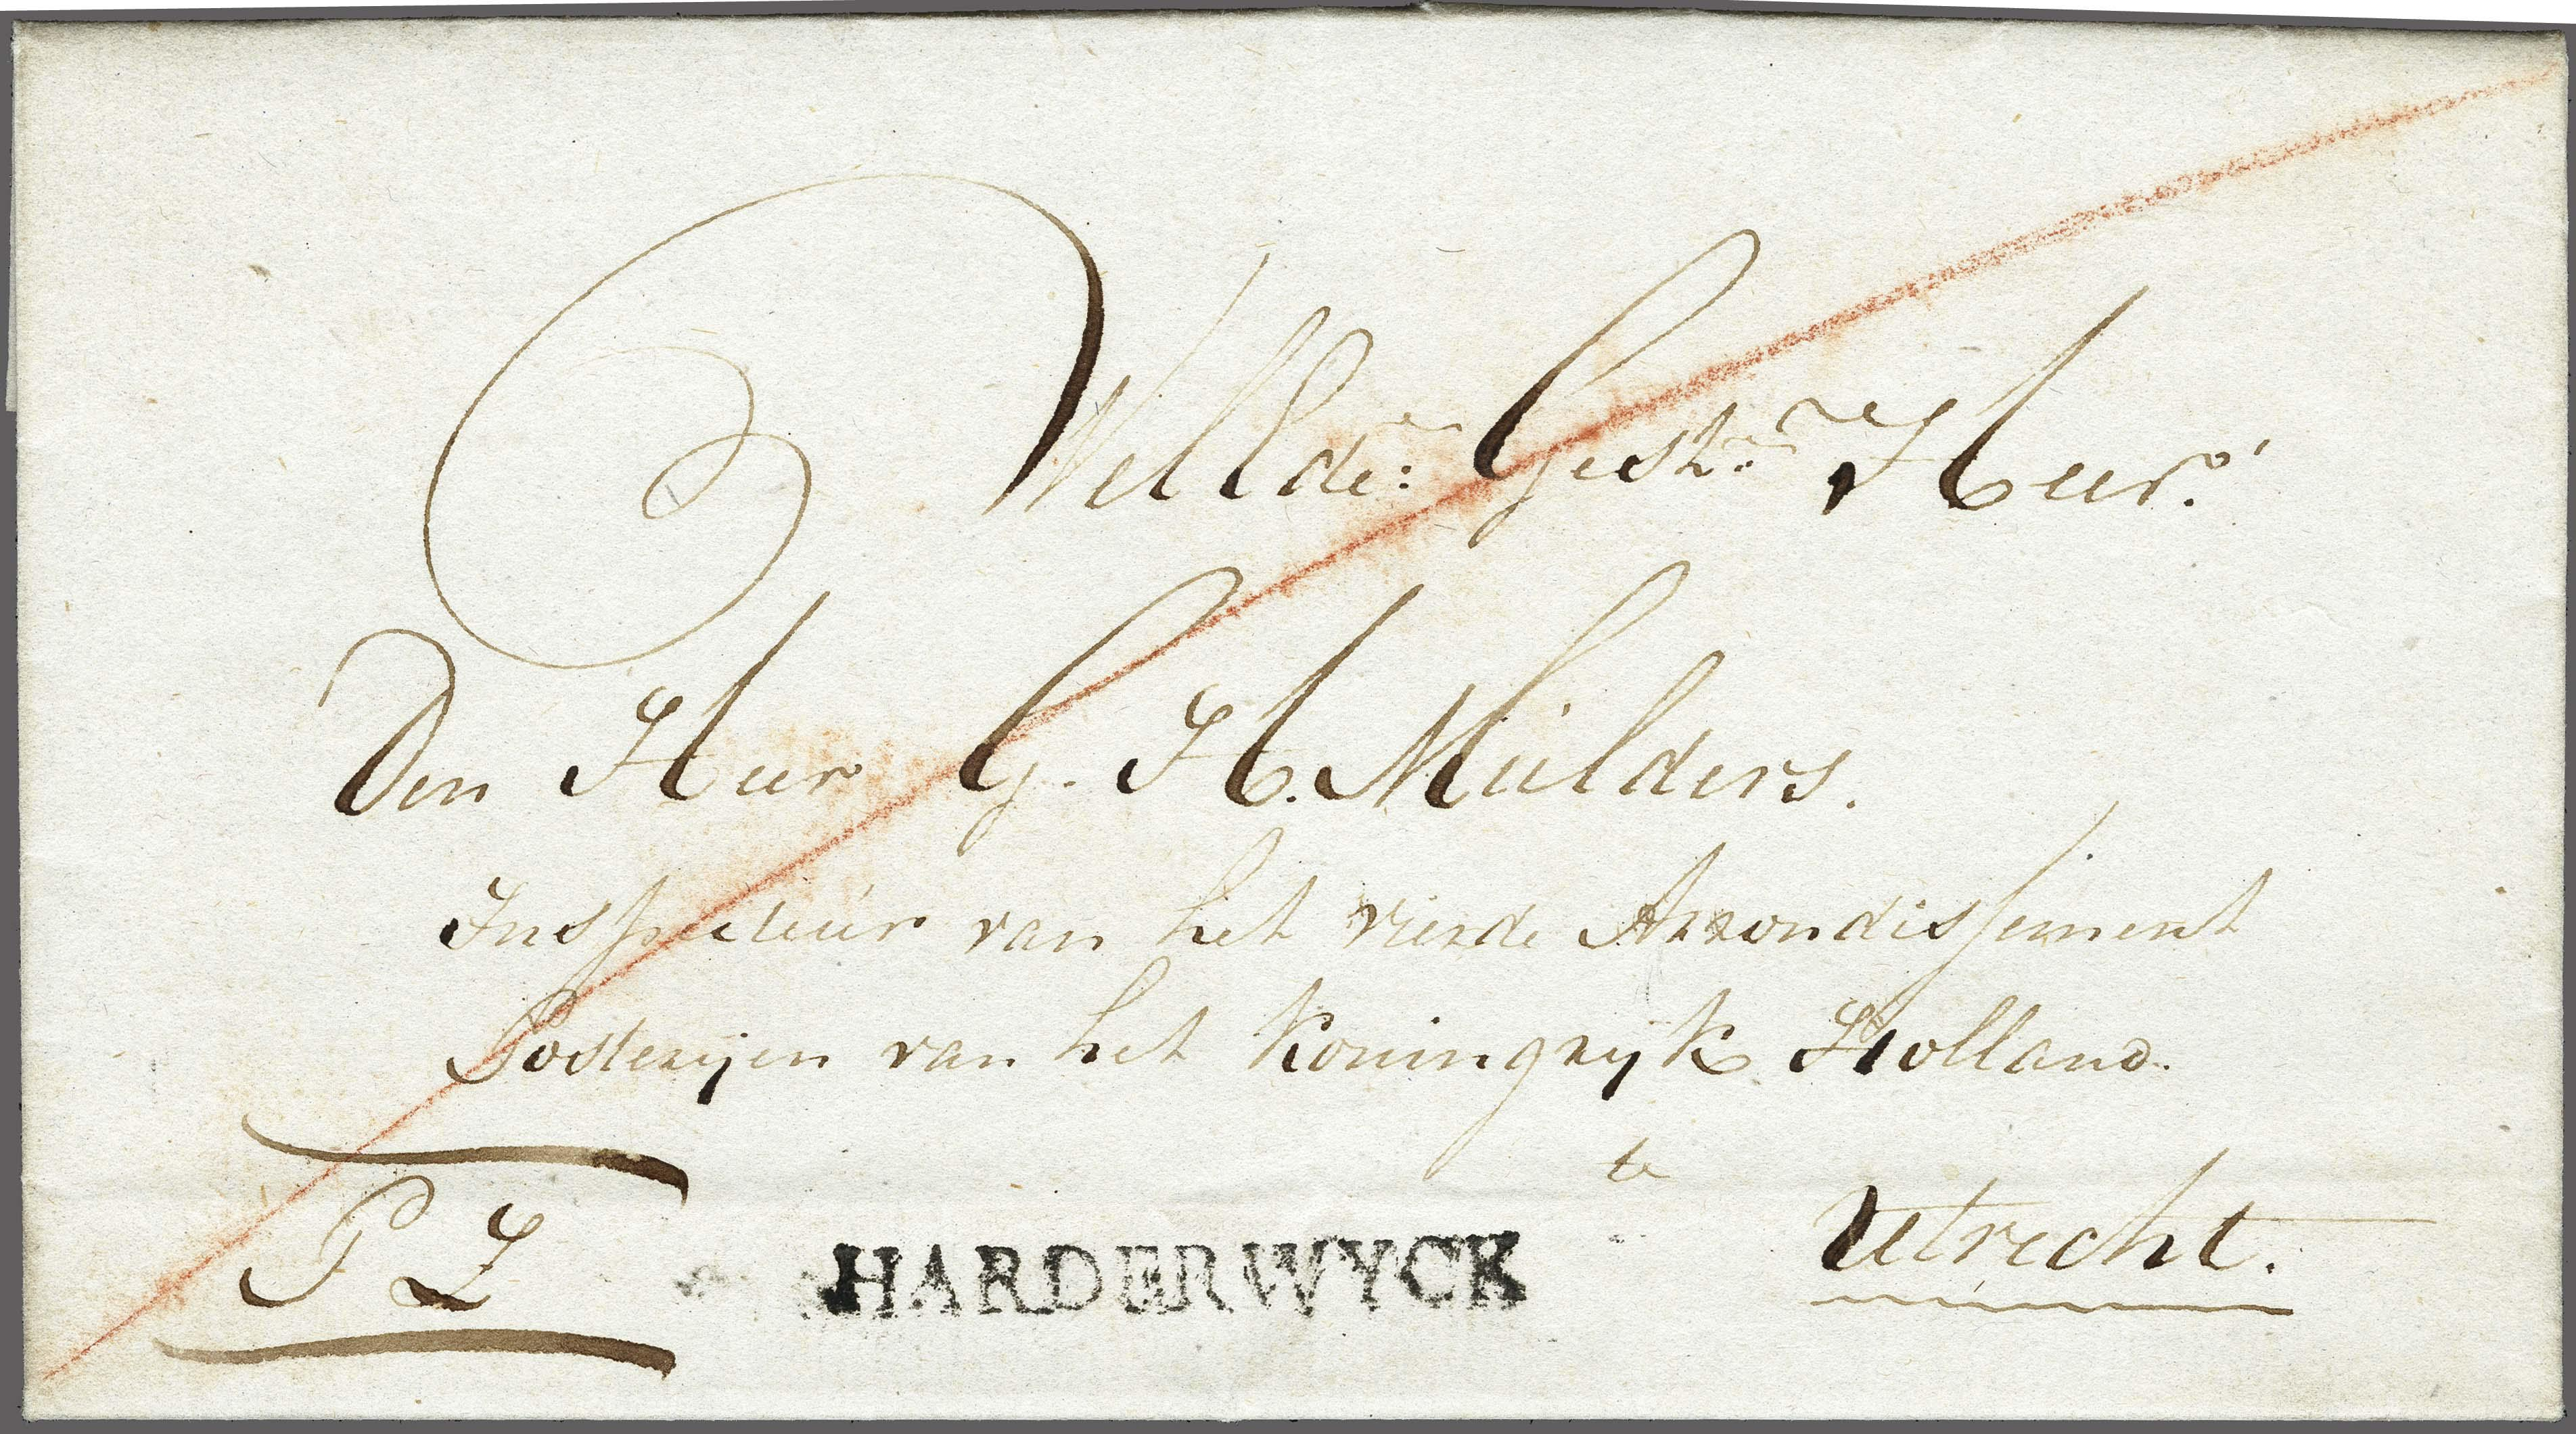 Lot 2312 - Netherlands and former colonies Netherlands -  Corinphila Veilingen Auction 250-253 - Day 3 - Netherlands and former colonies - Single lots & Picture postcards